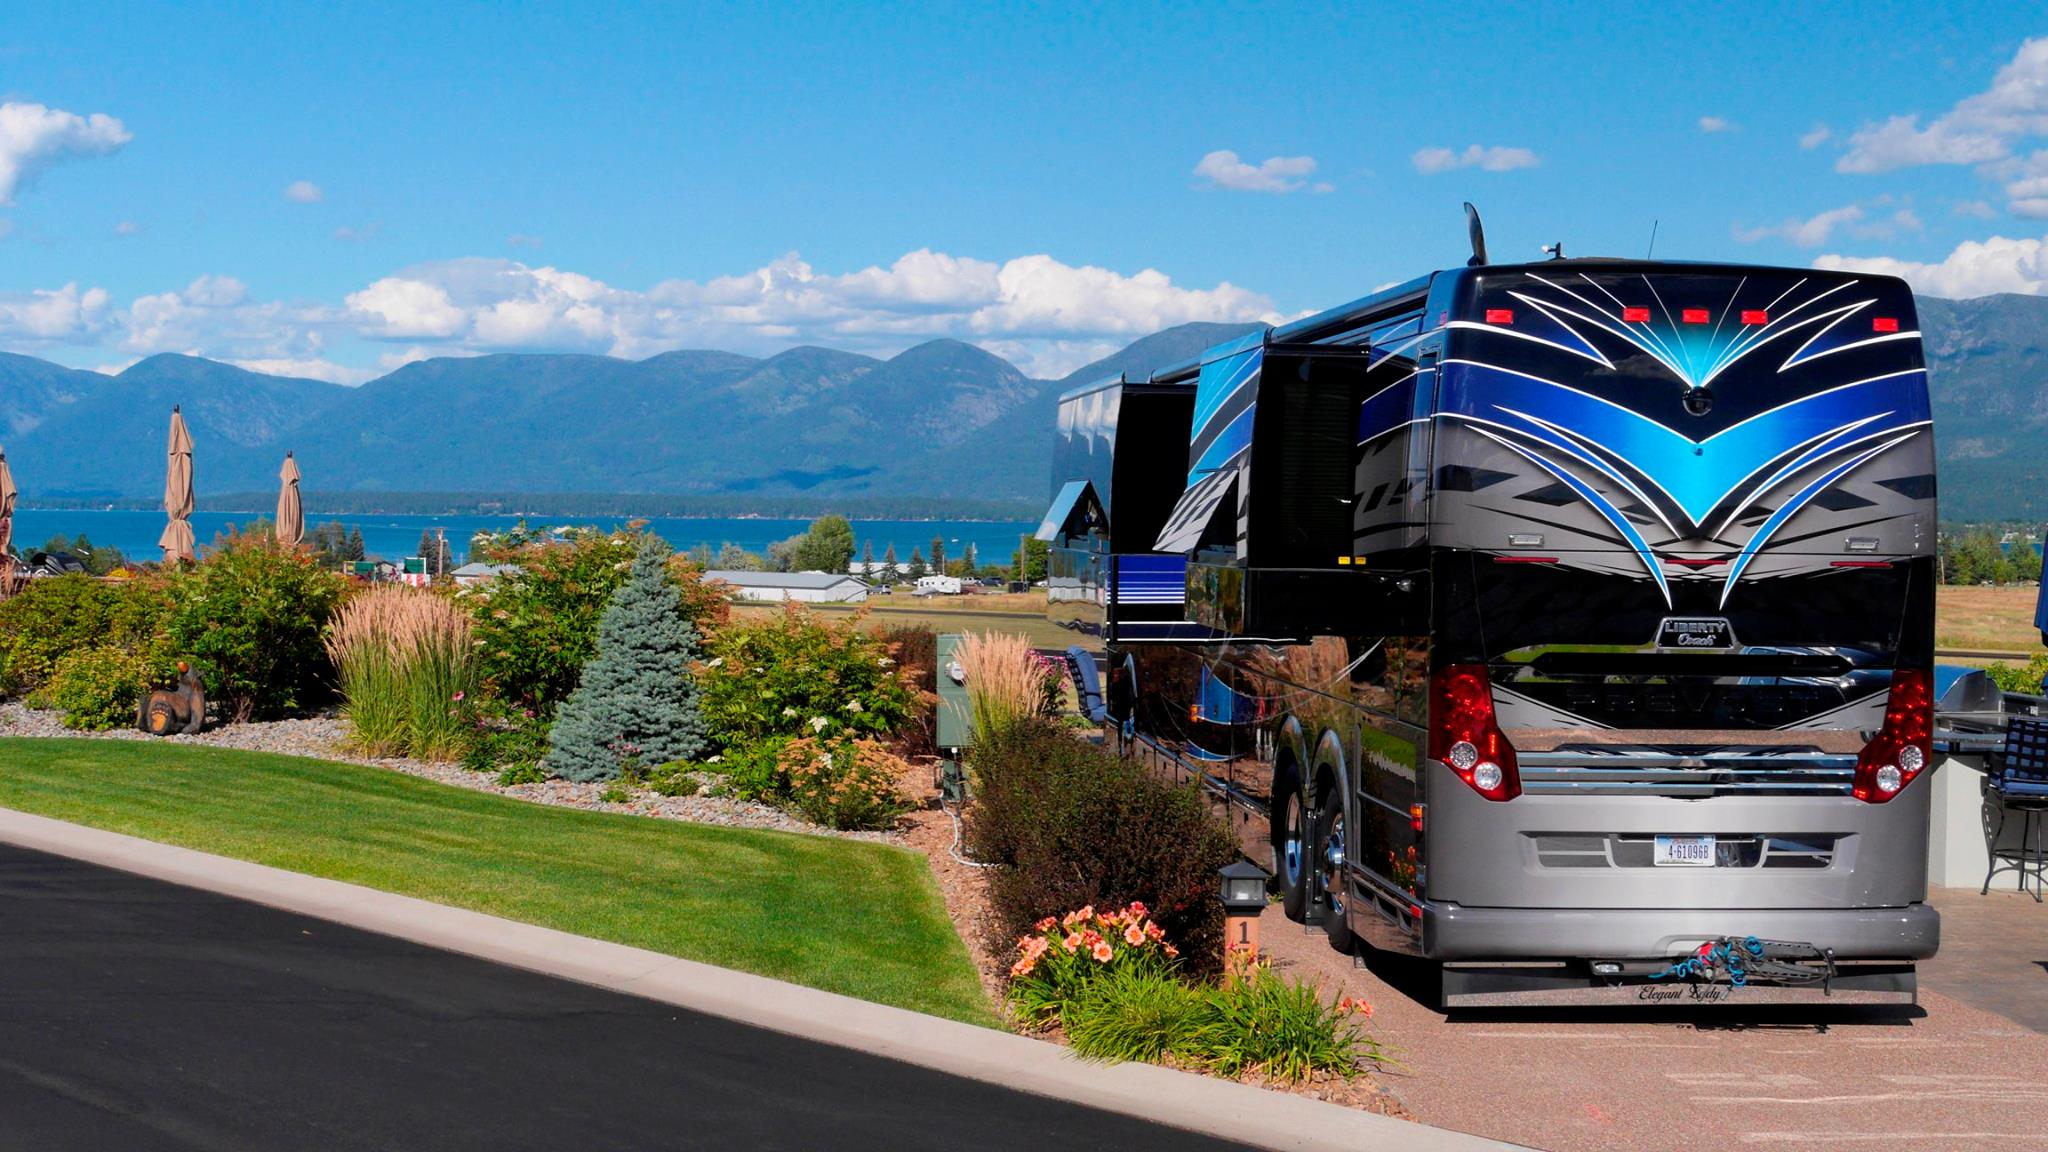 Best Campgrounds, RV Parks And Resorts In Montana